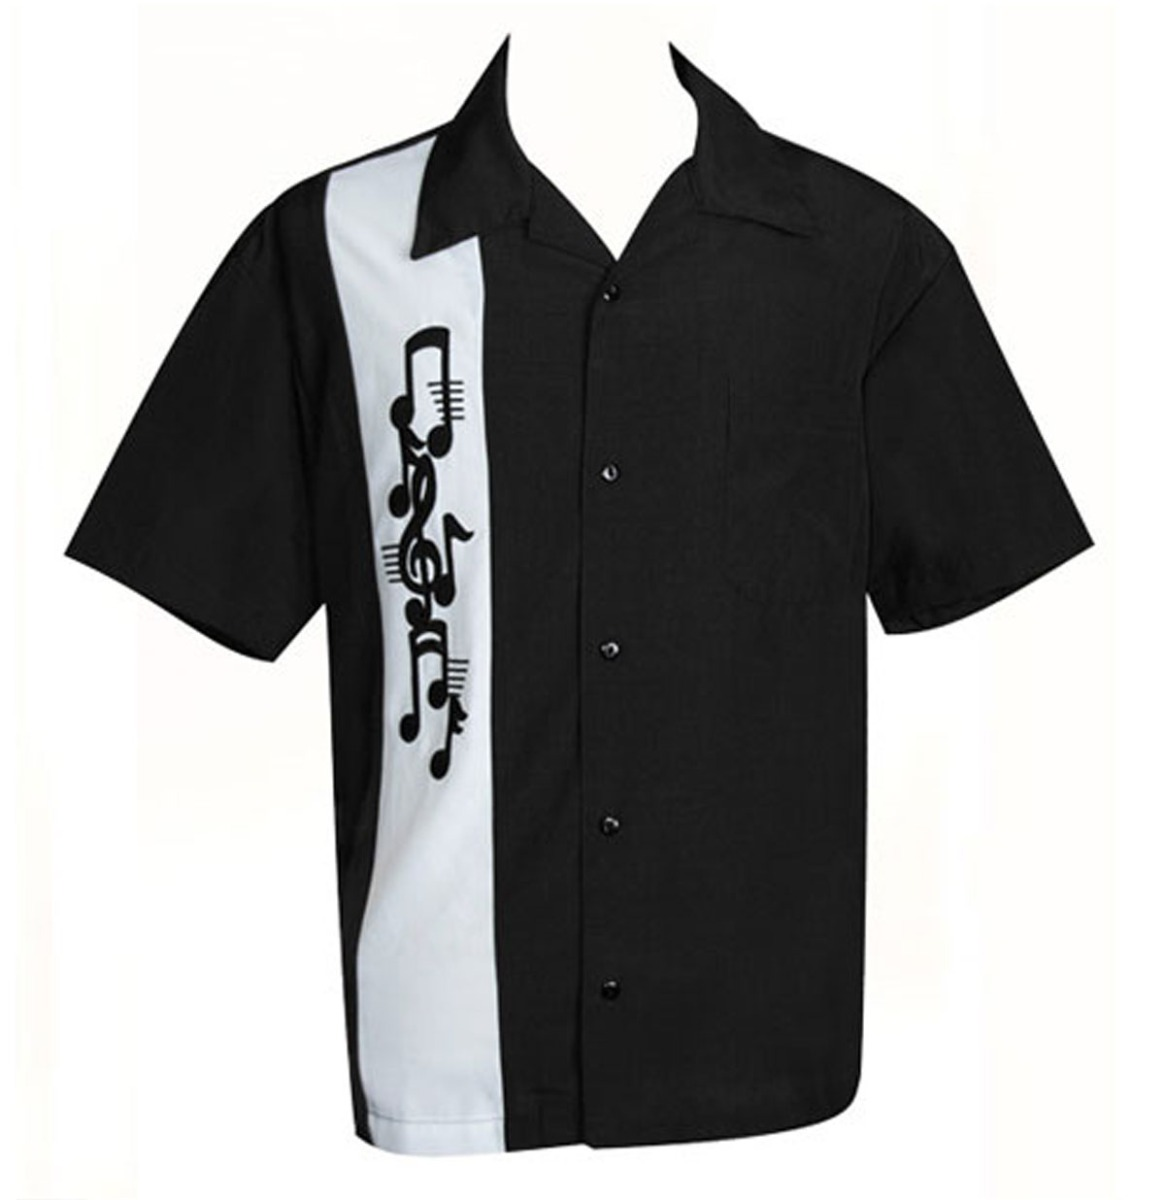 Music Note Applique Retro Shirt Black/White